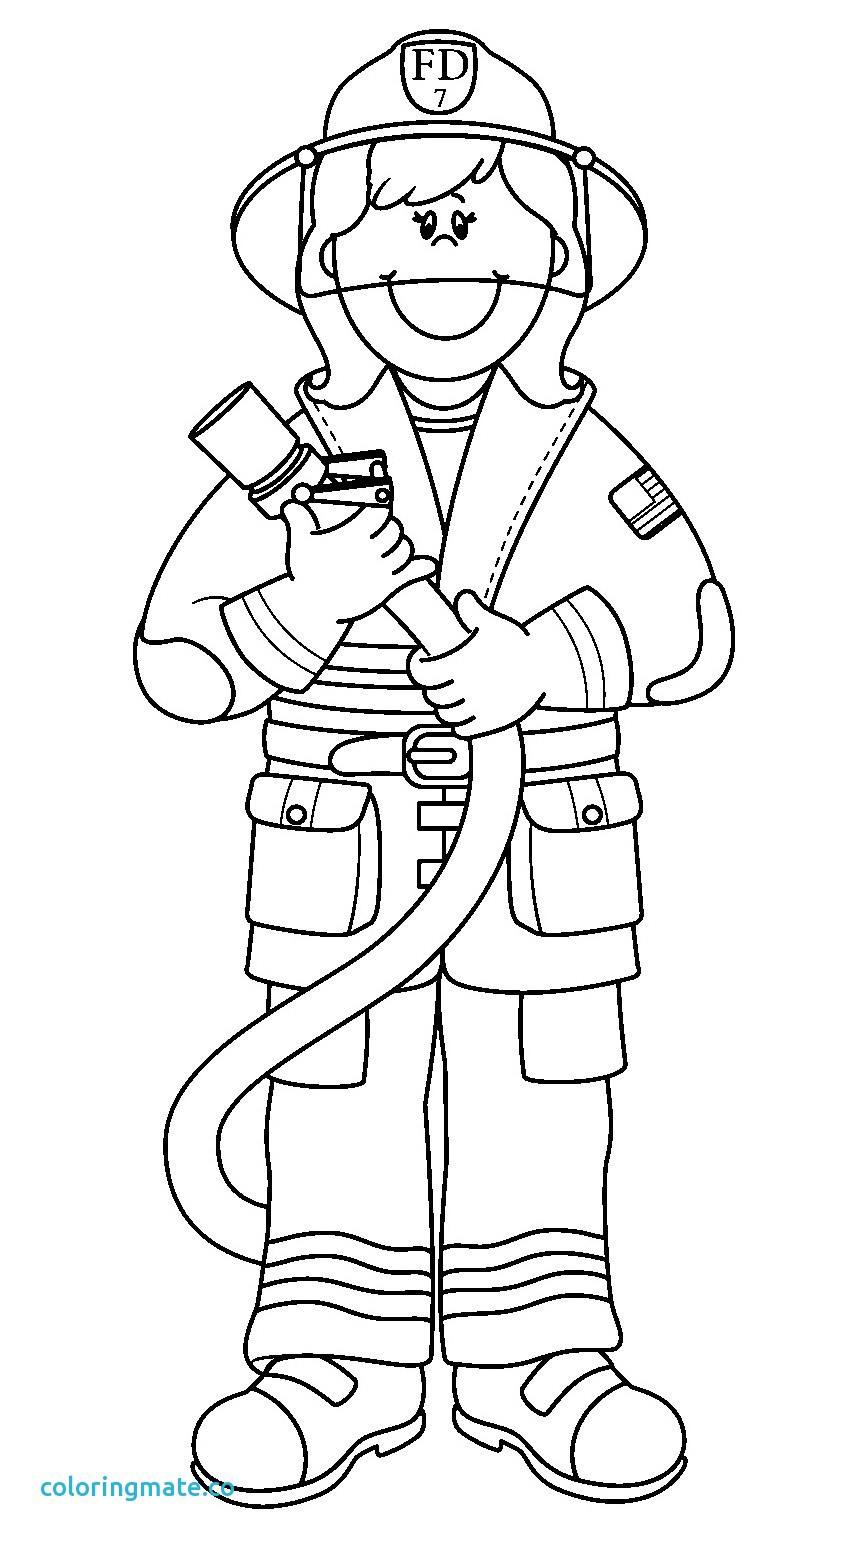 coloring community helpers images printable community helper coloring pages for kids images coloring helpers community 1 1